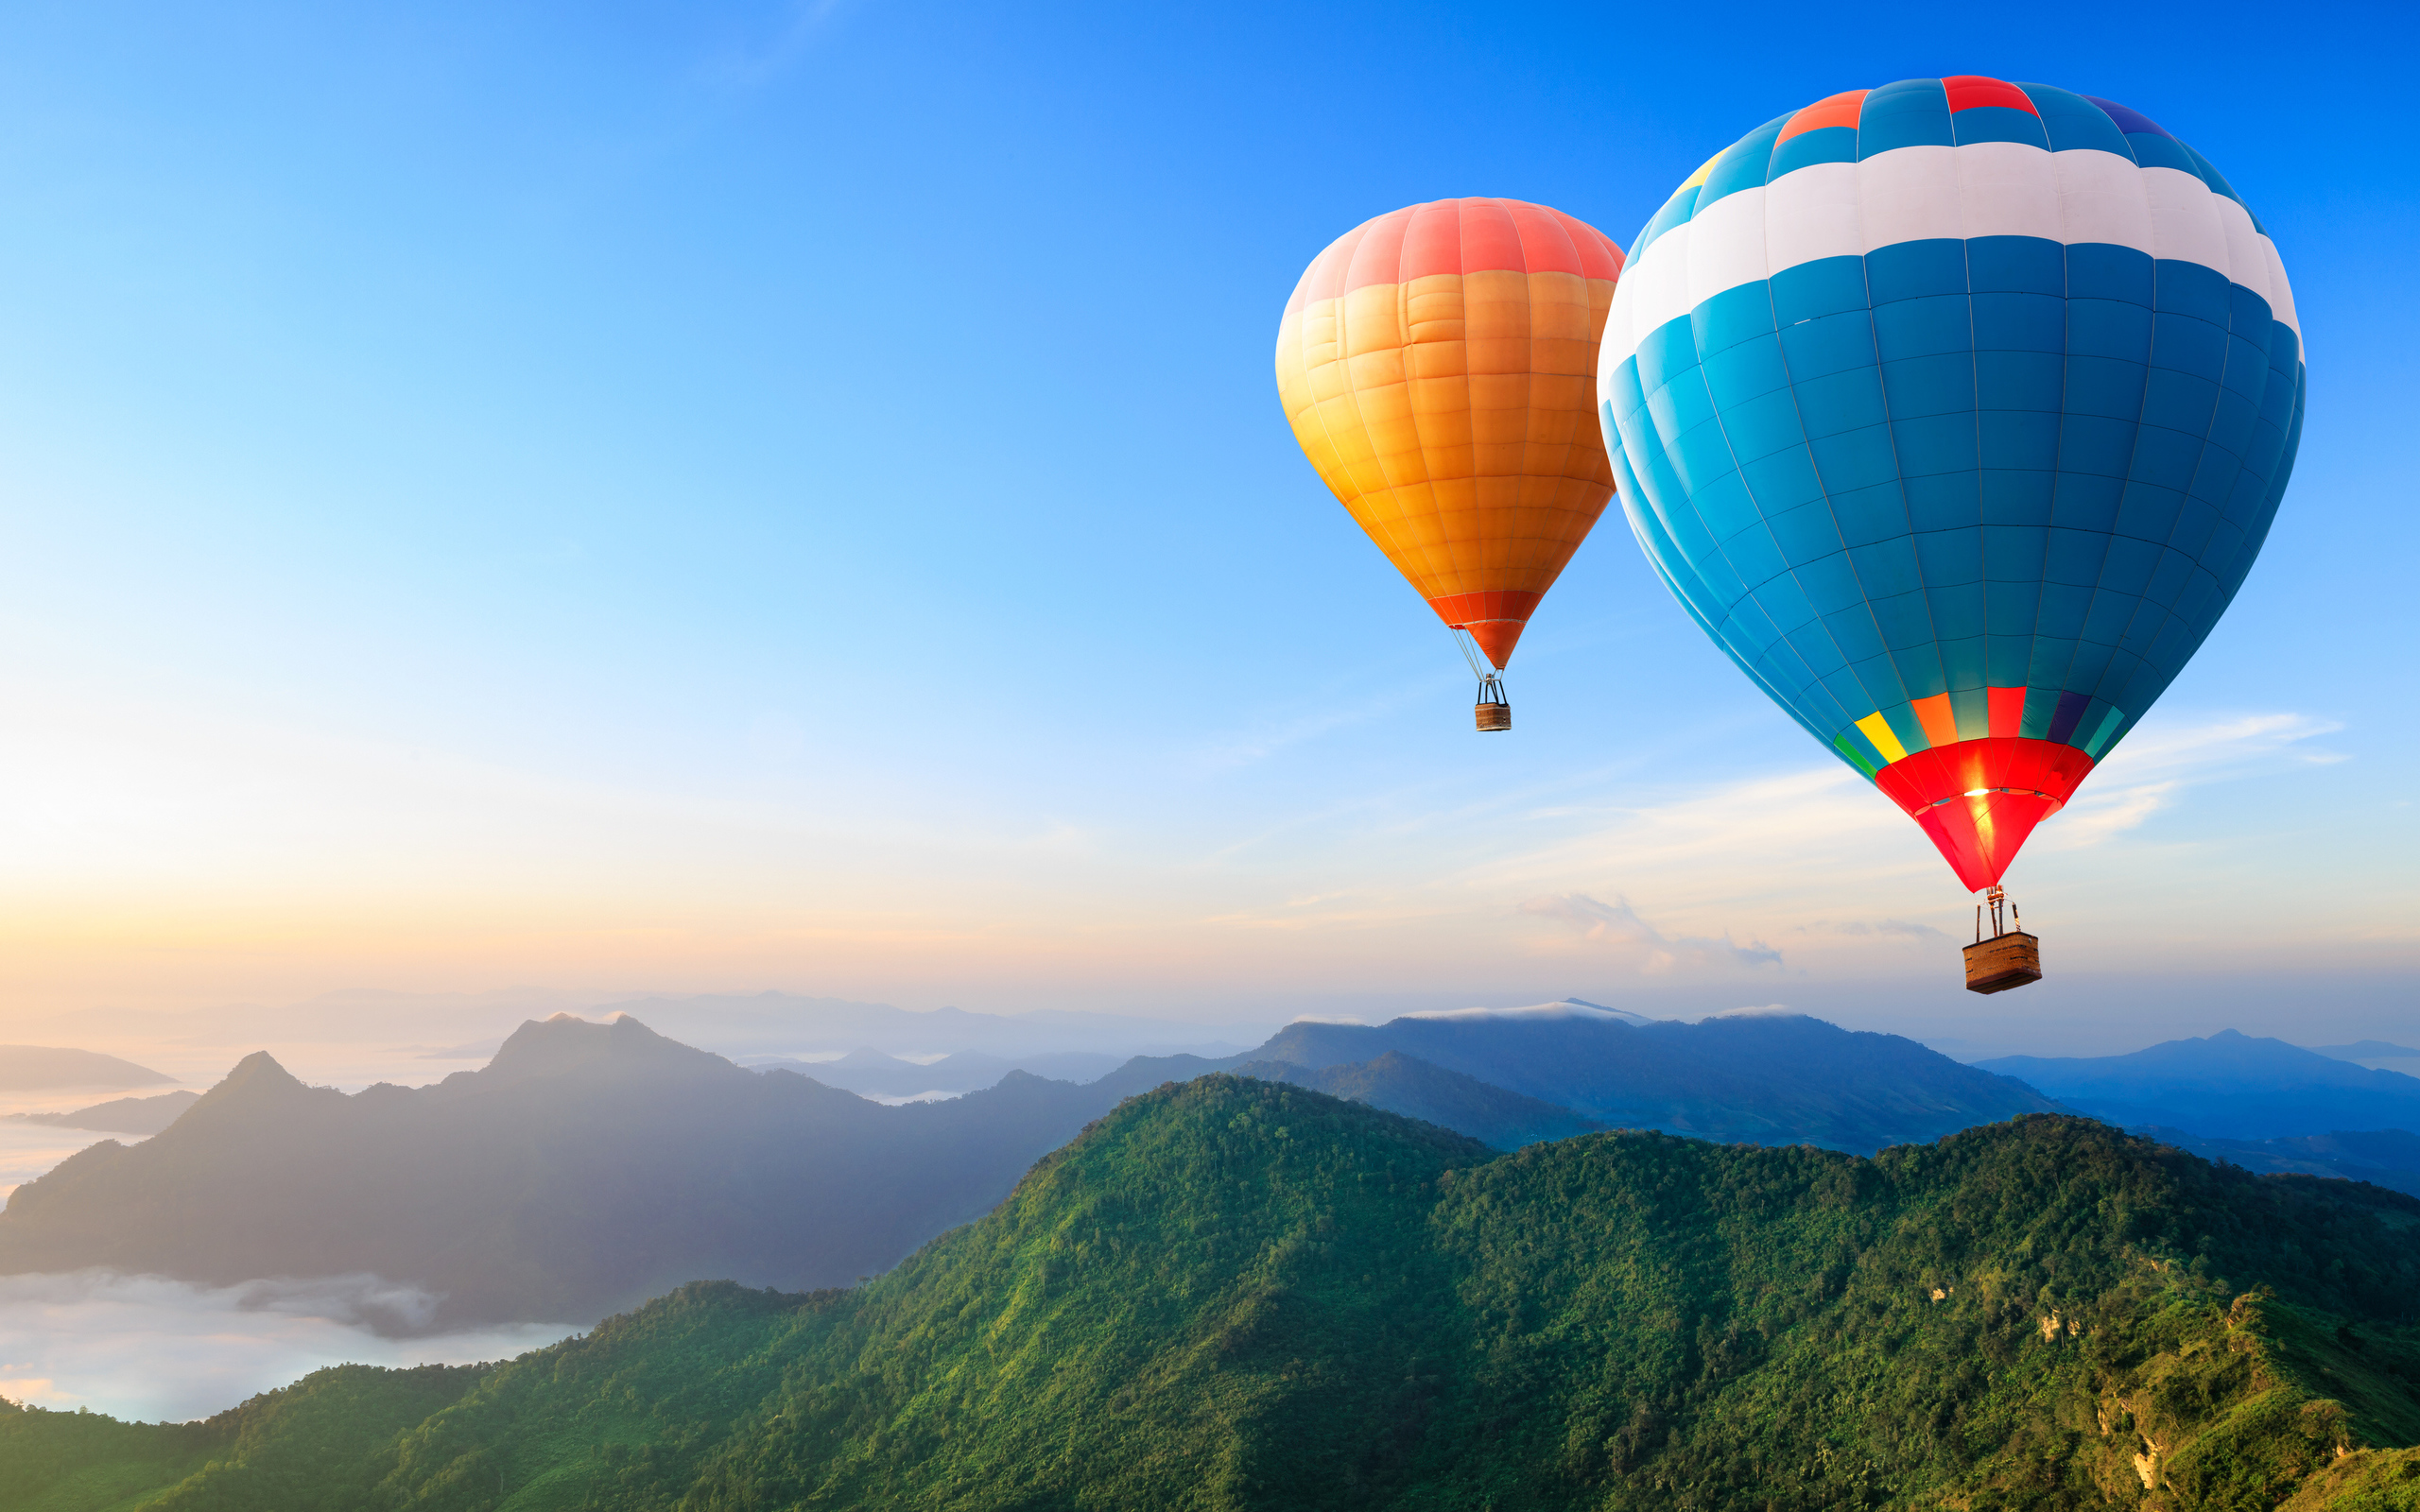 Hot Air Balloon High Quality Wallpapers Gallery, YZZ.39711433